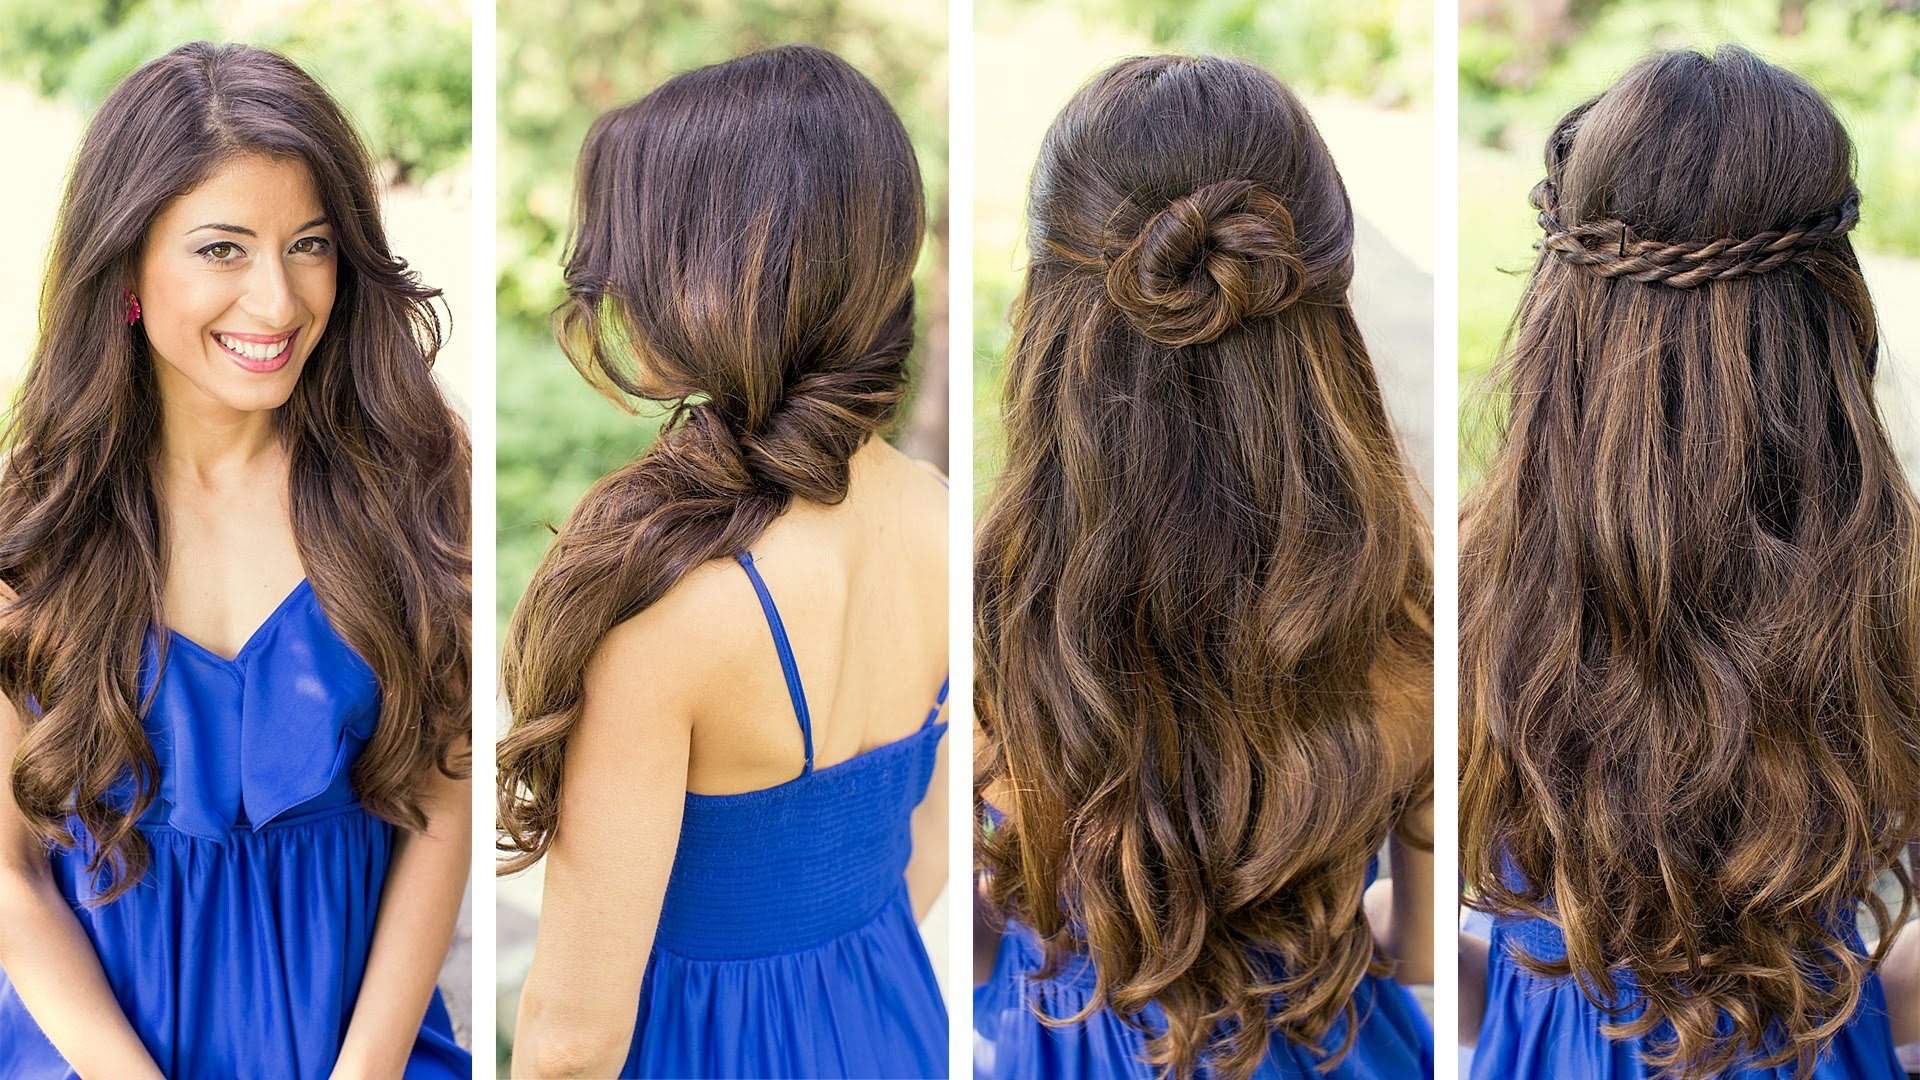 Hairstyles with a rim on an elastic band - the perfect solution to change your image